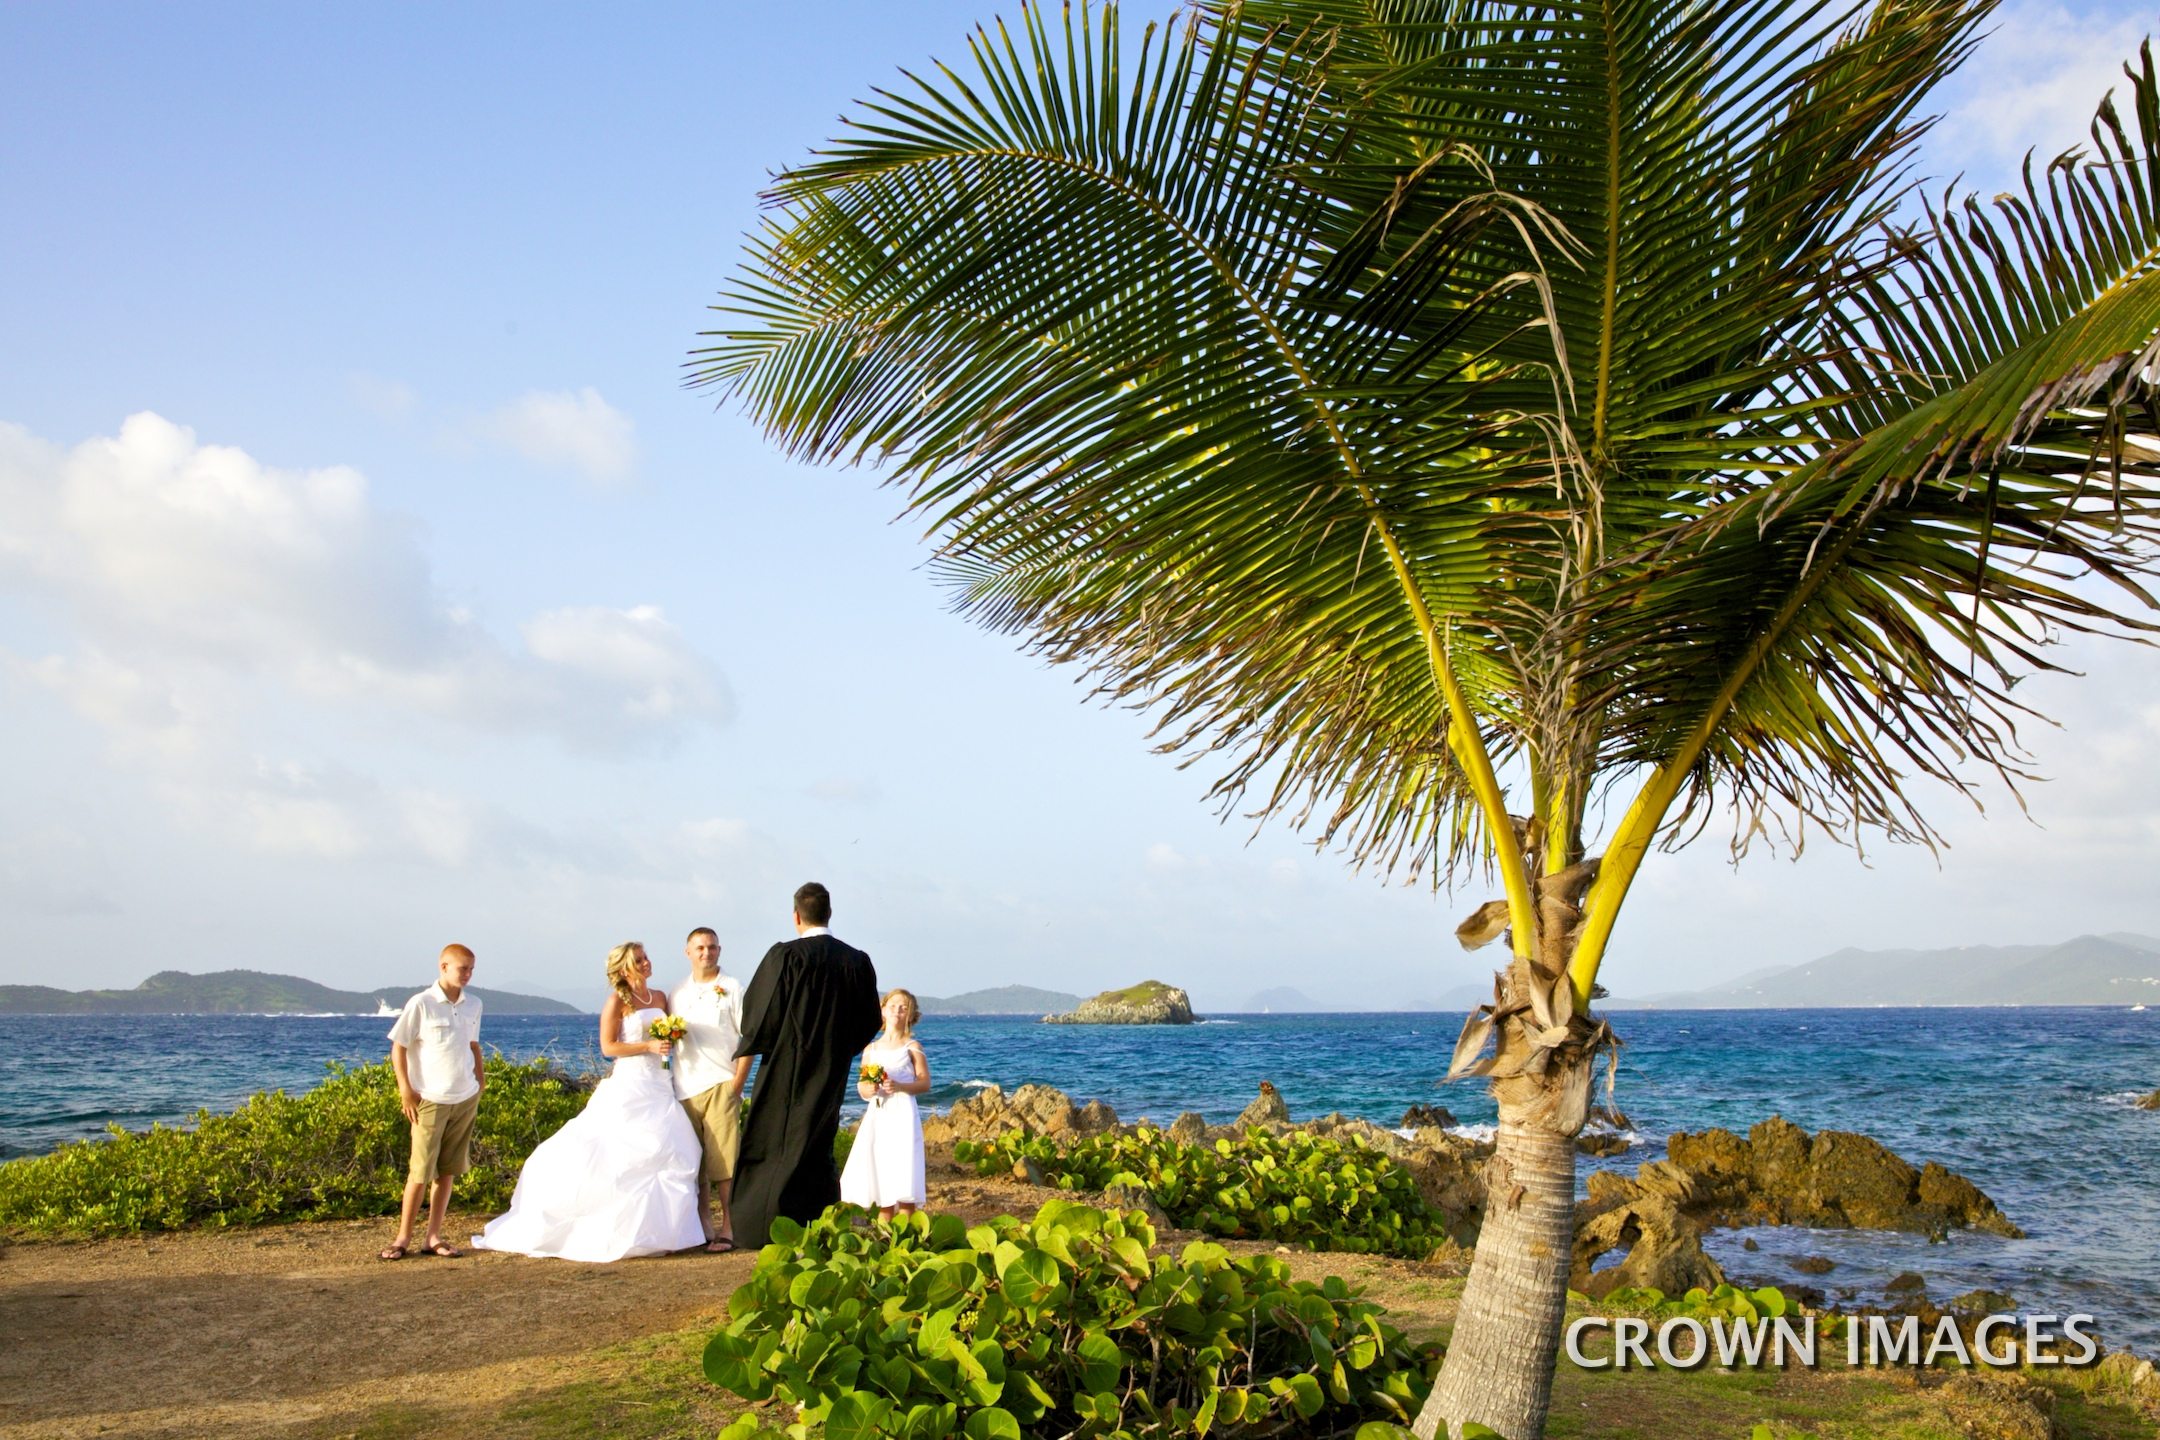 crown images wedding photographer